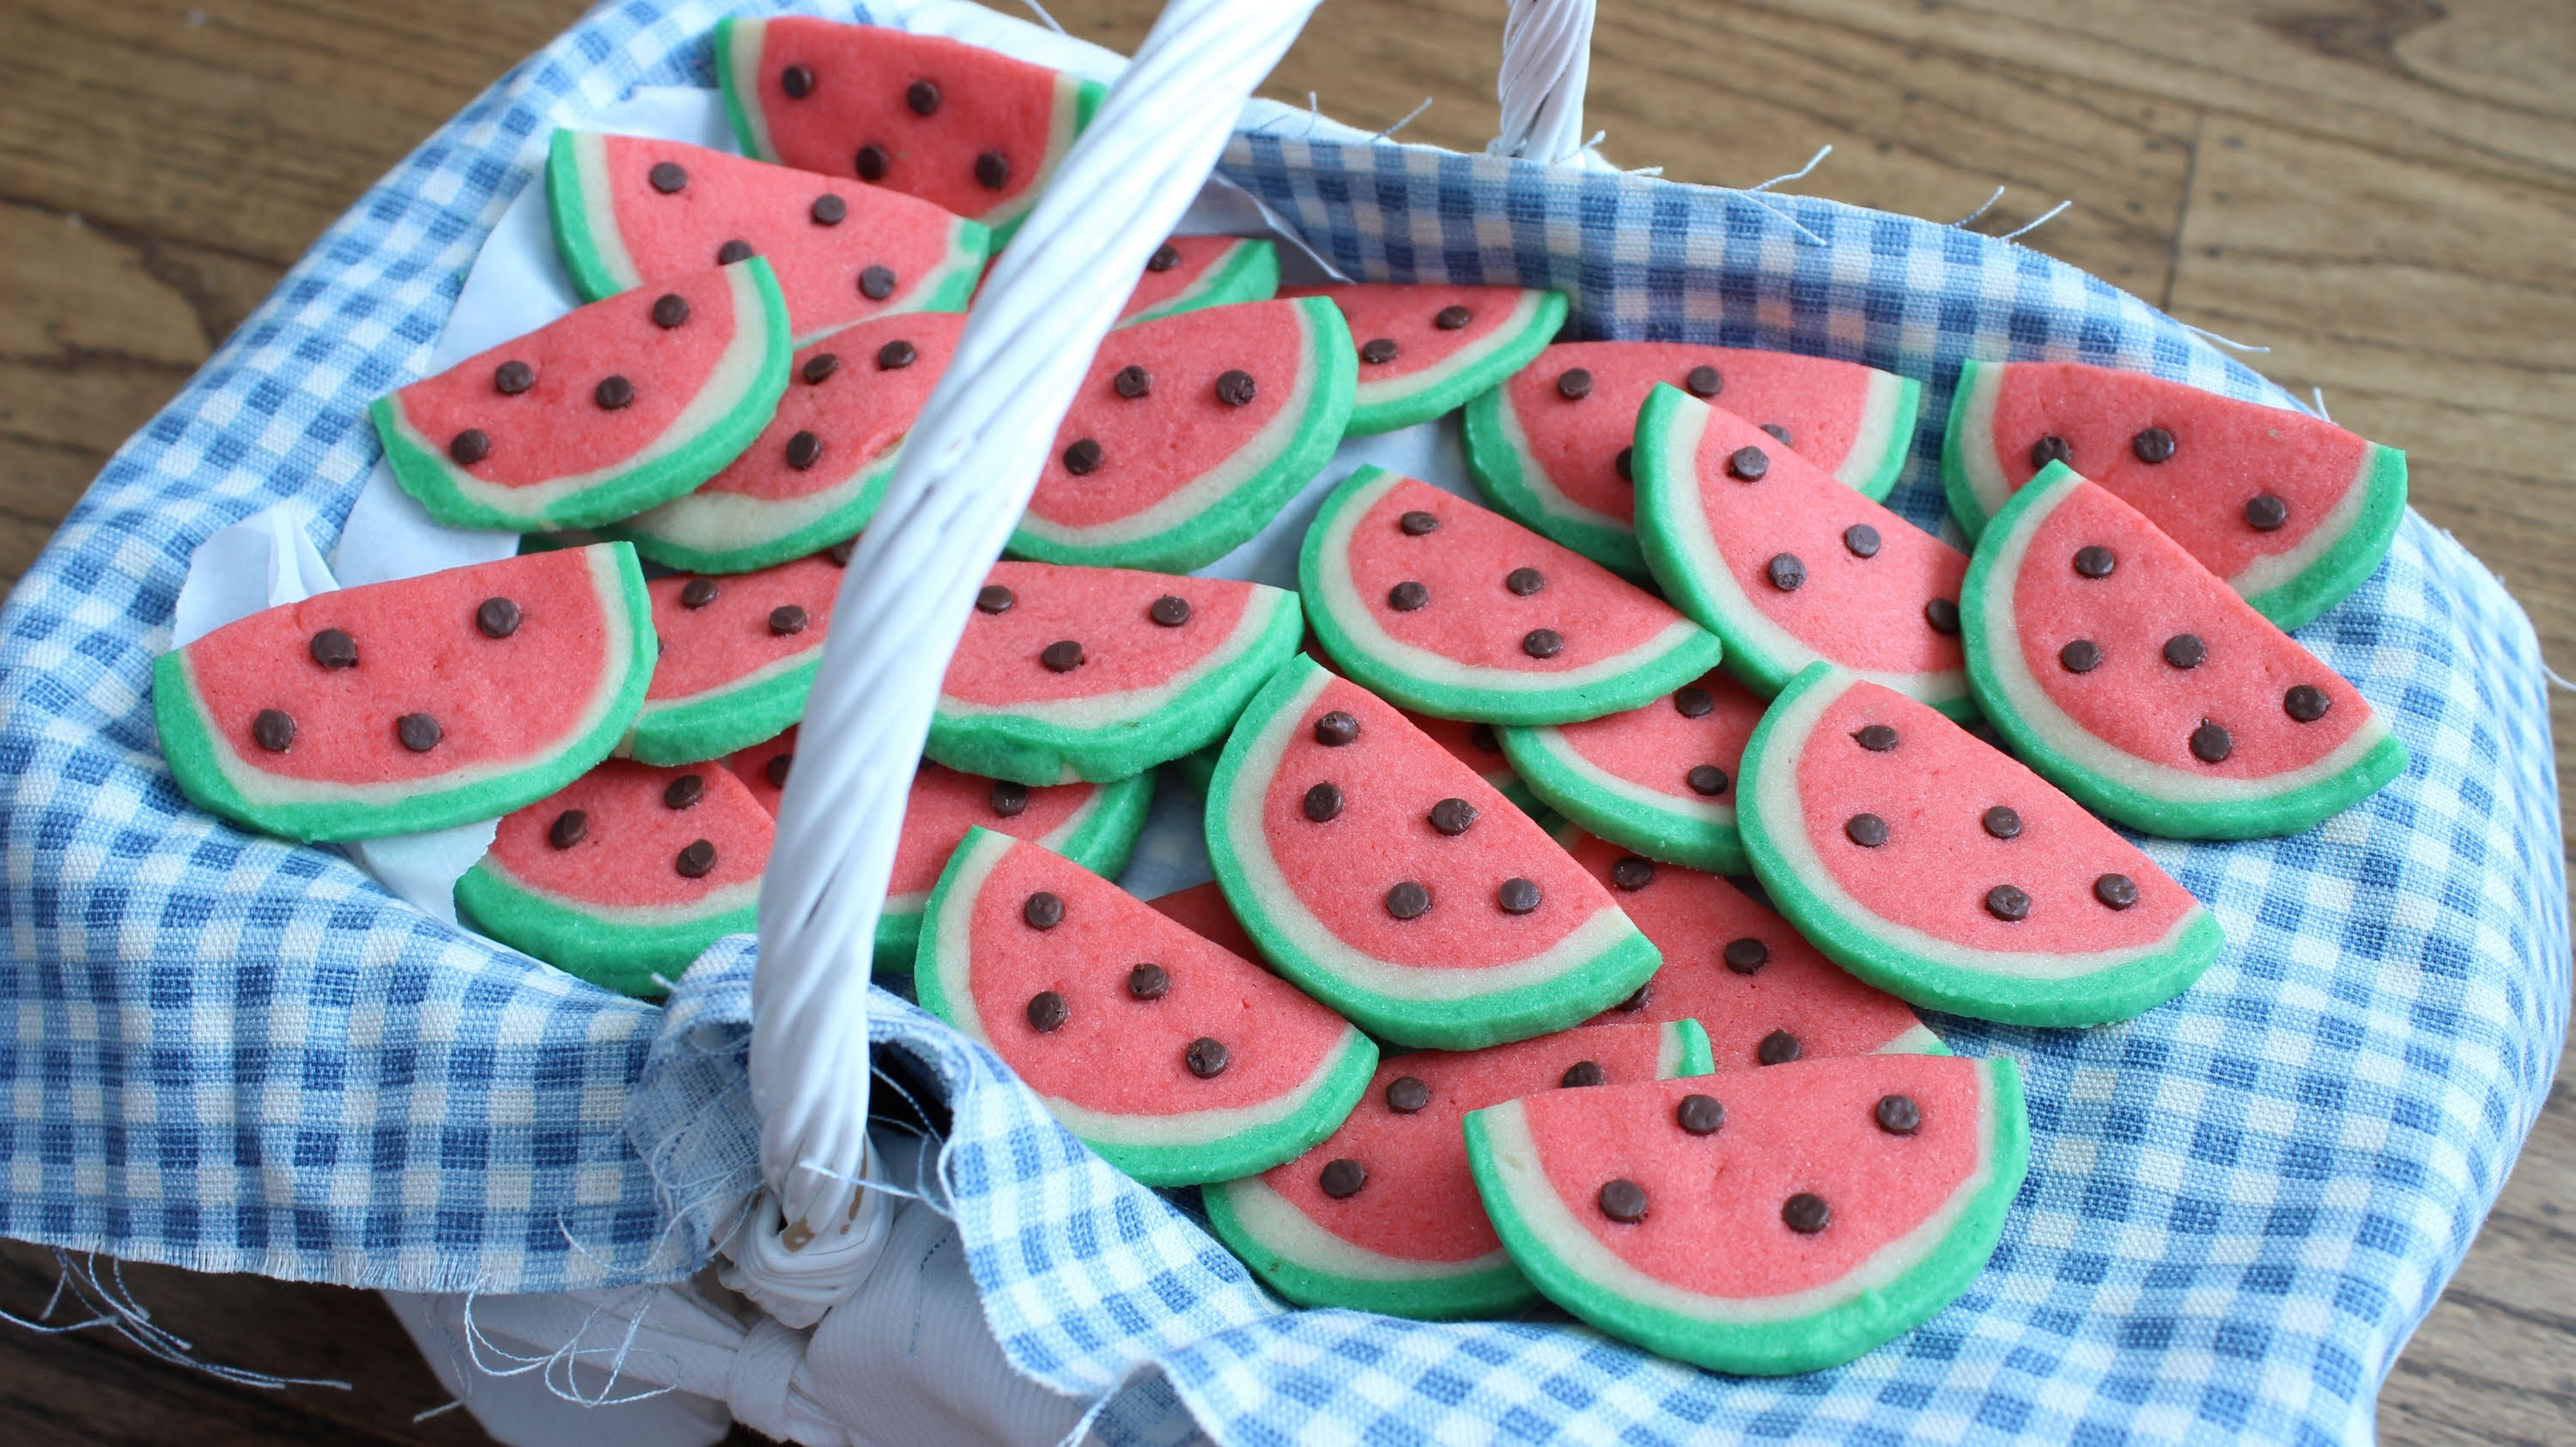 Do You Love Easy Cookie Recipes ? Then Try These Fun Watermelon Cookies!